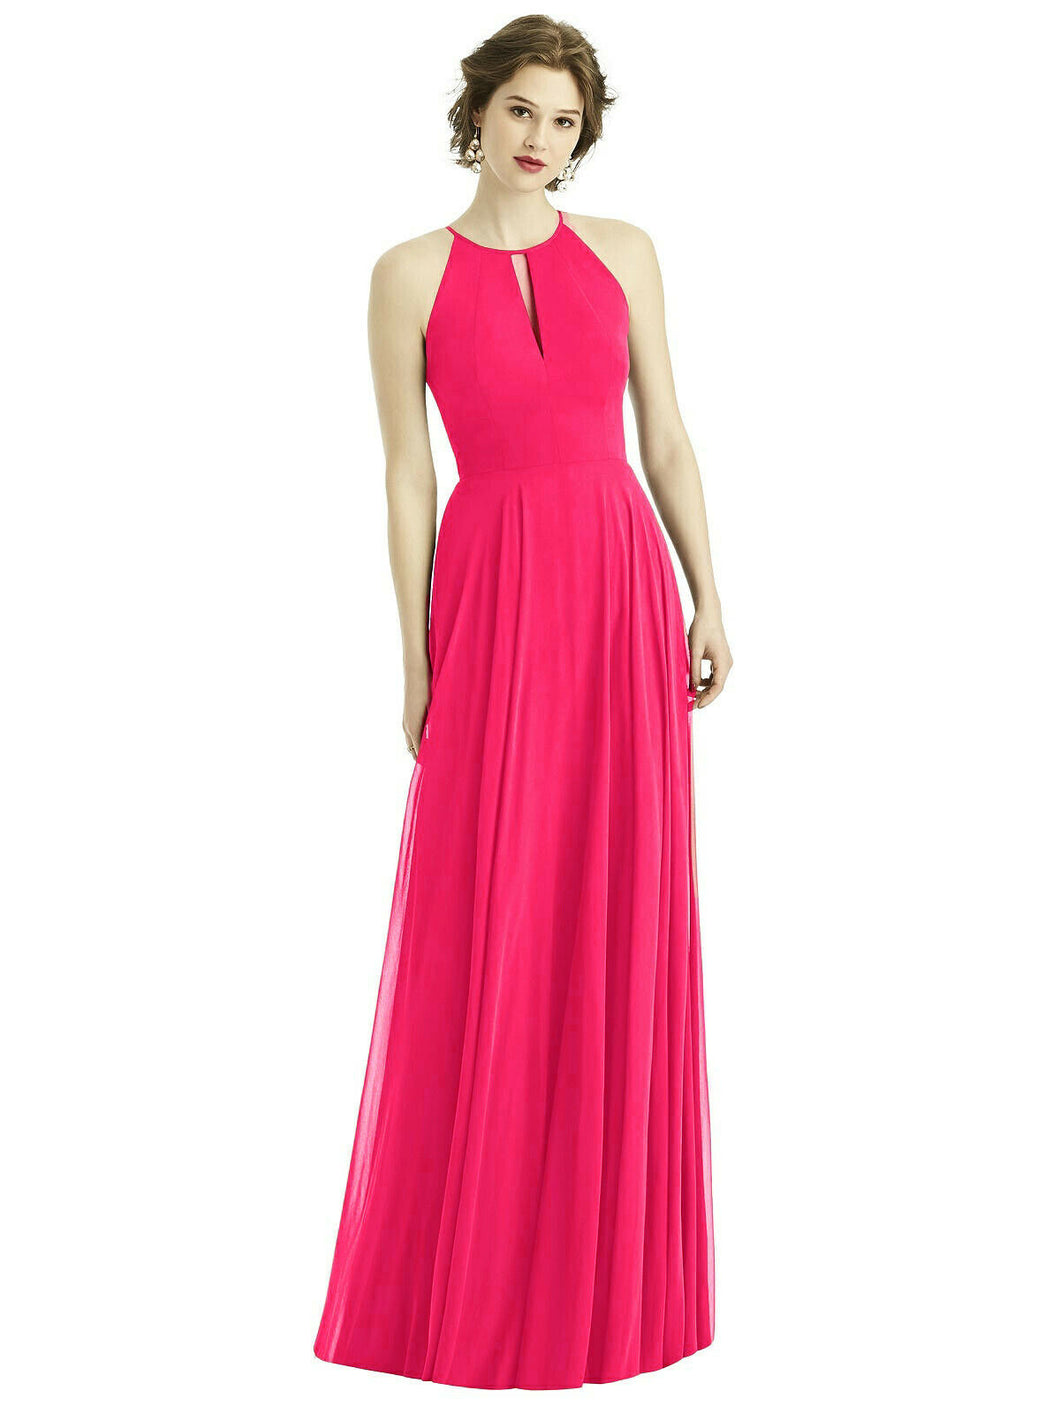 Fuchsia cerise hot pink  long halter neck bridesmaid evening prom wedding bridal dress Loulous Bridal Boutique Ltd UK